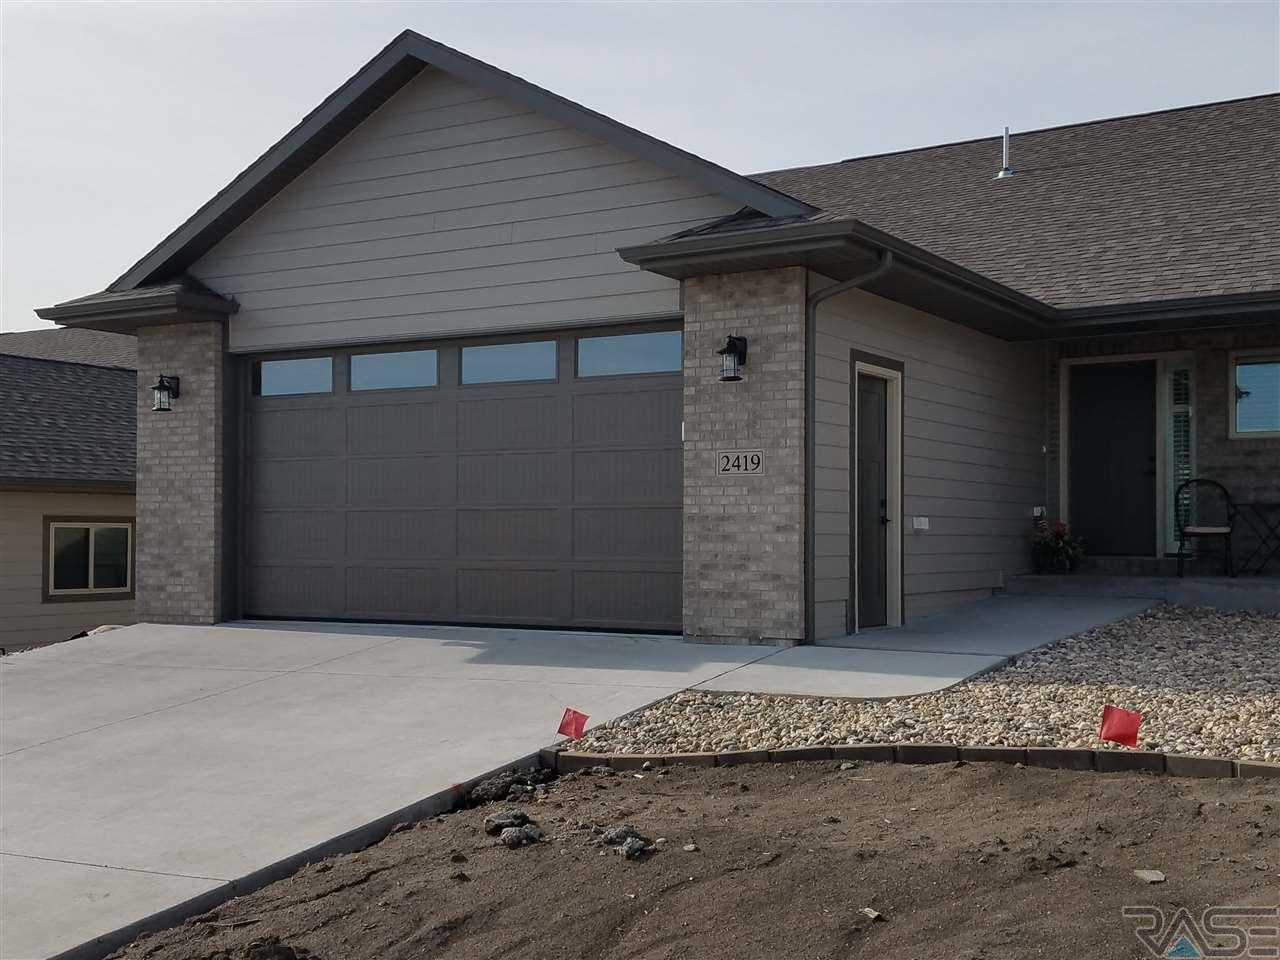 Property for sale at 2415 E Tranquility Cir, Sioux Falls,  SD 57108